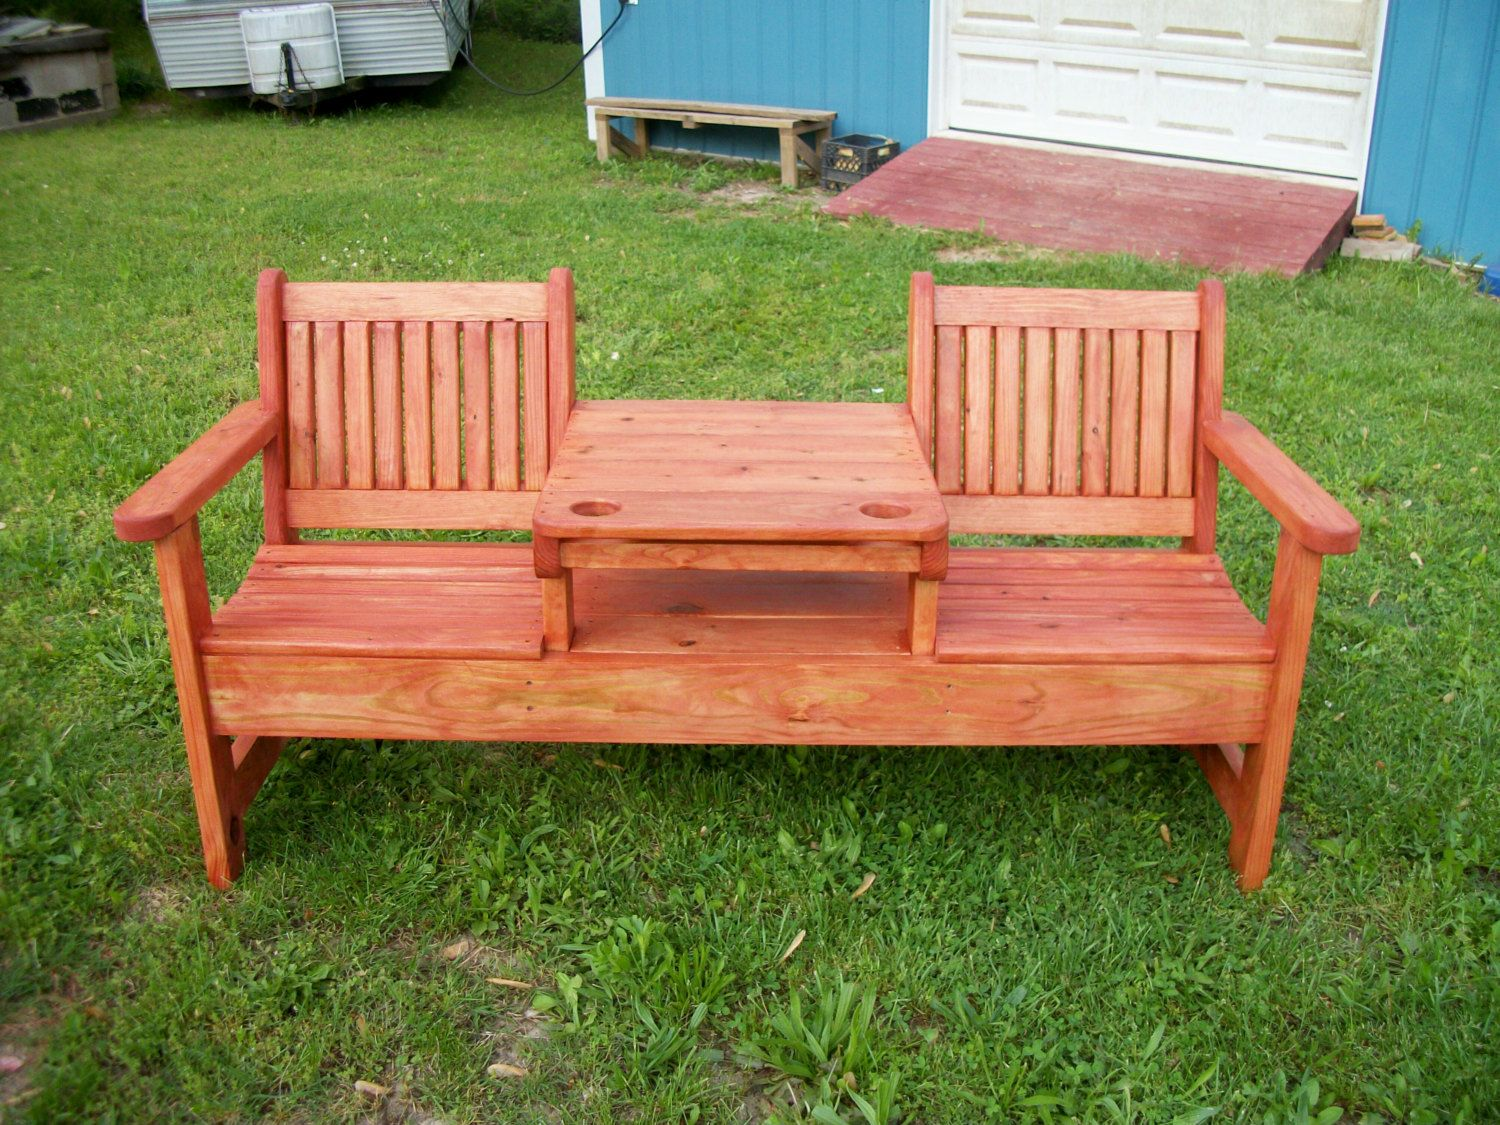 Patio Bench Ideas Plans Diy Free Wooden Wheelbarrows Garden Pictures Of Metal Park Benches